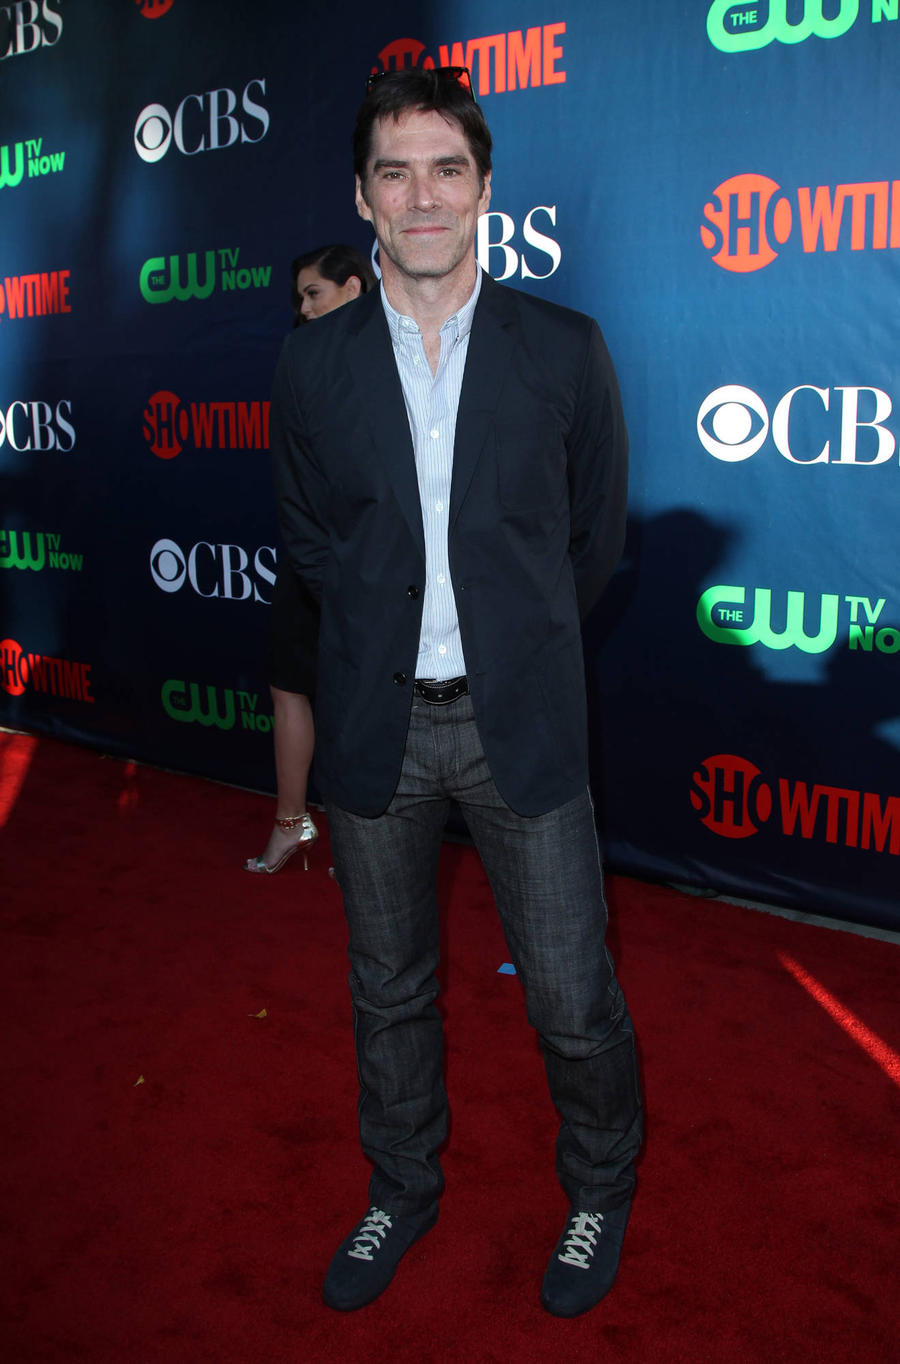 Thomas Gibson Attended Anger Management Classes In The Past - Report